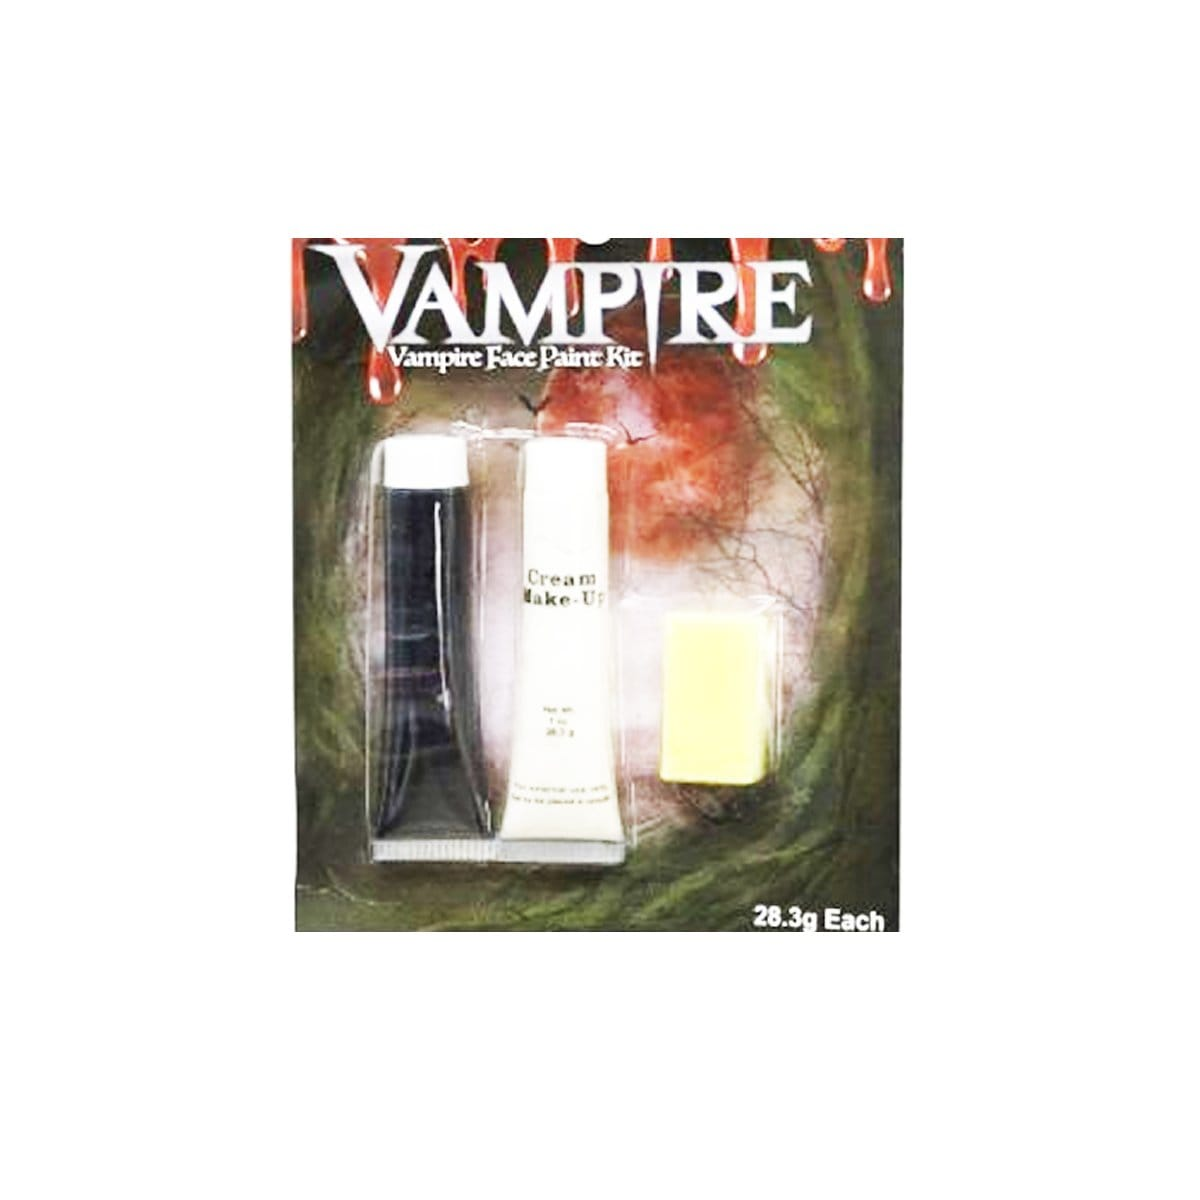 VAMPIRE BLACK & WHITE FACE PAINT KIT ASST